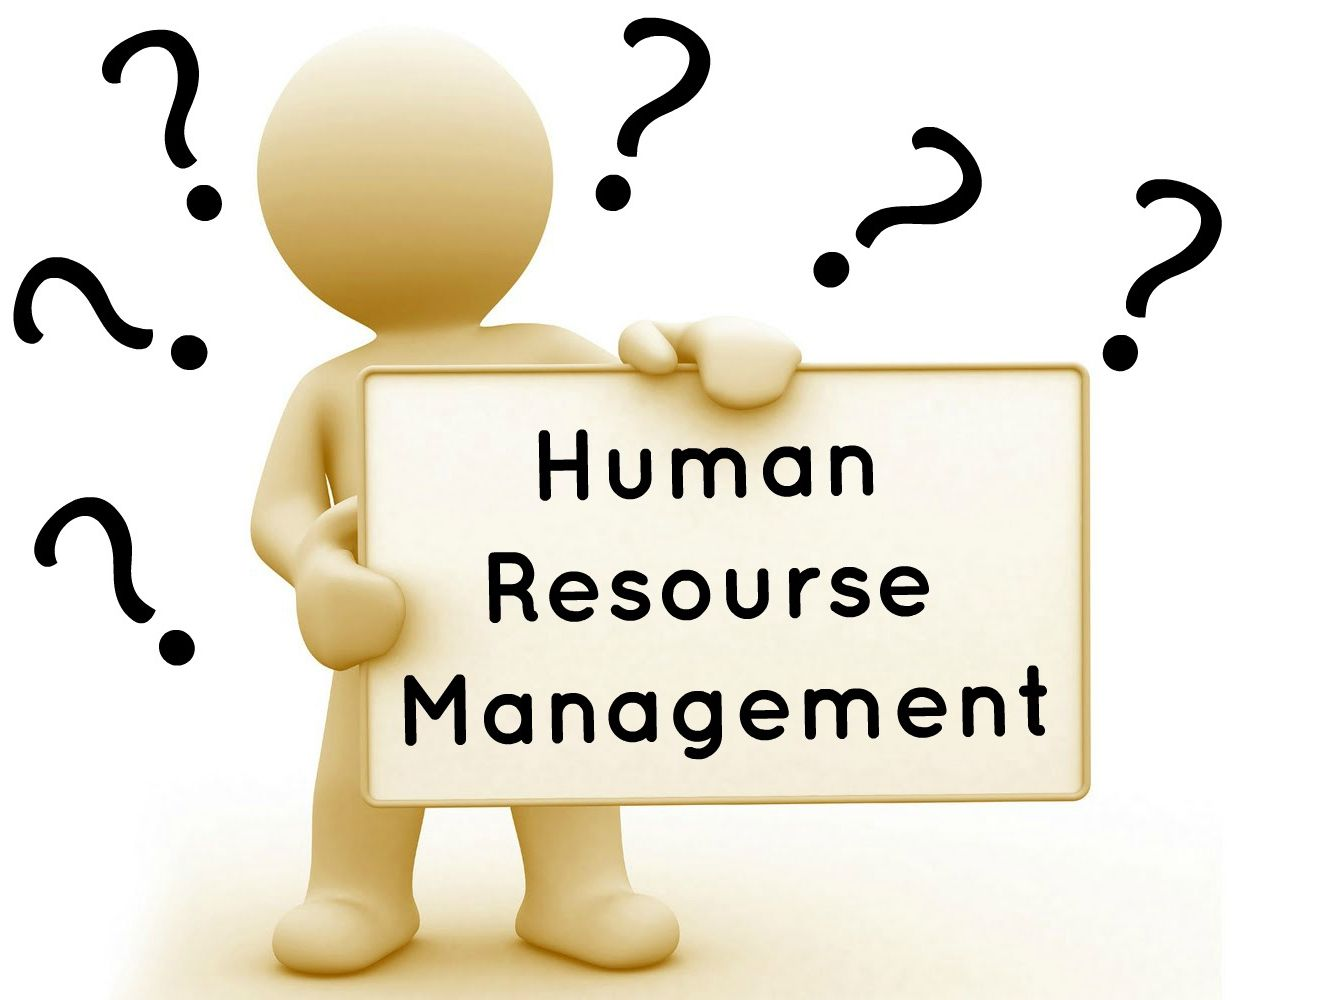 Unit 2 Human Resource Management, IB Business Management